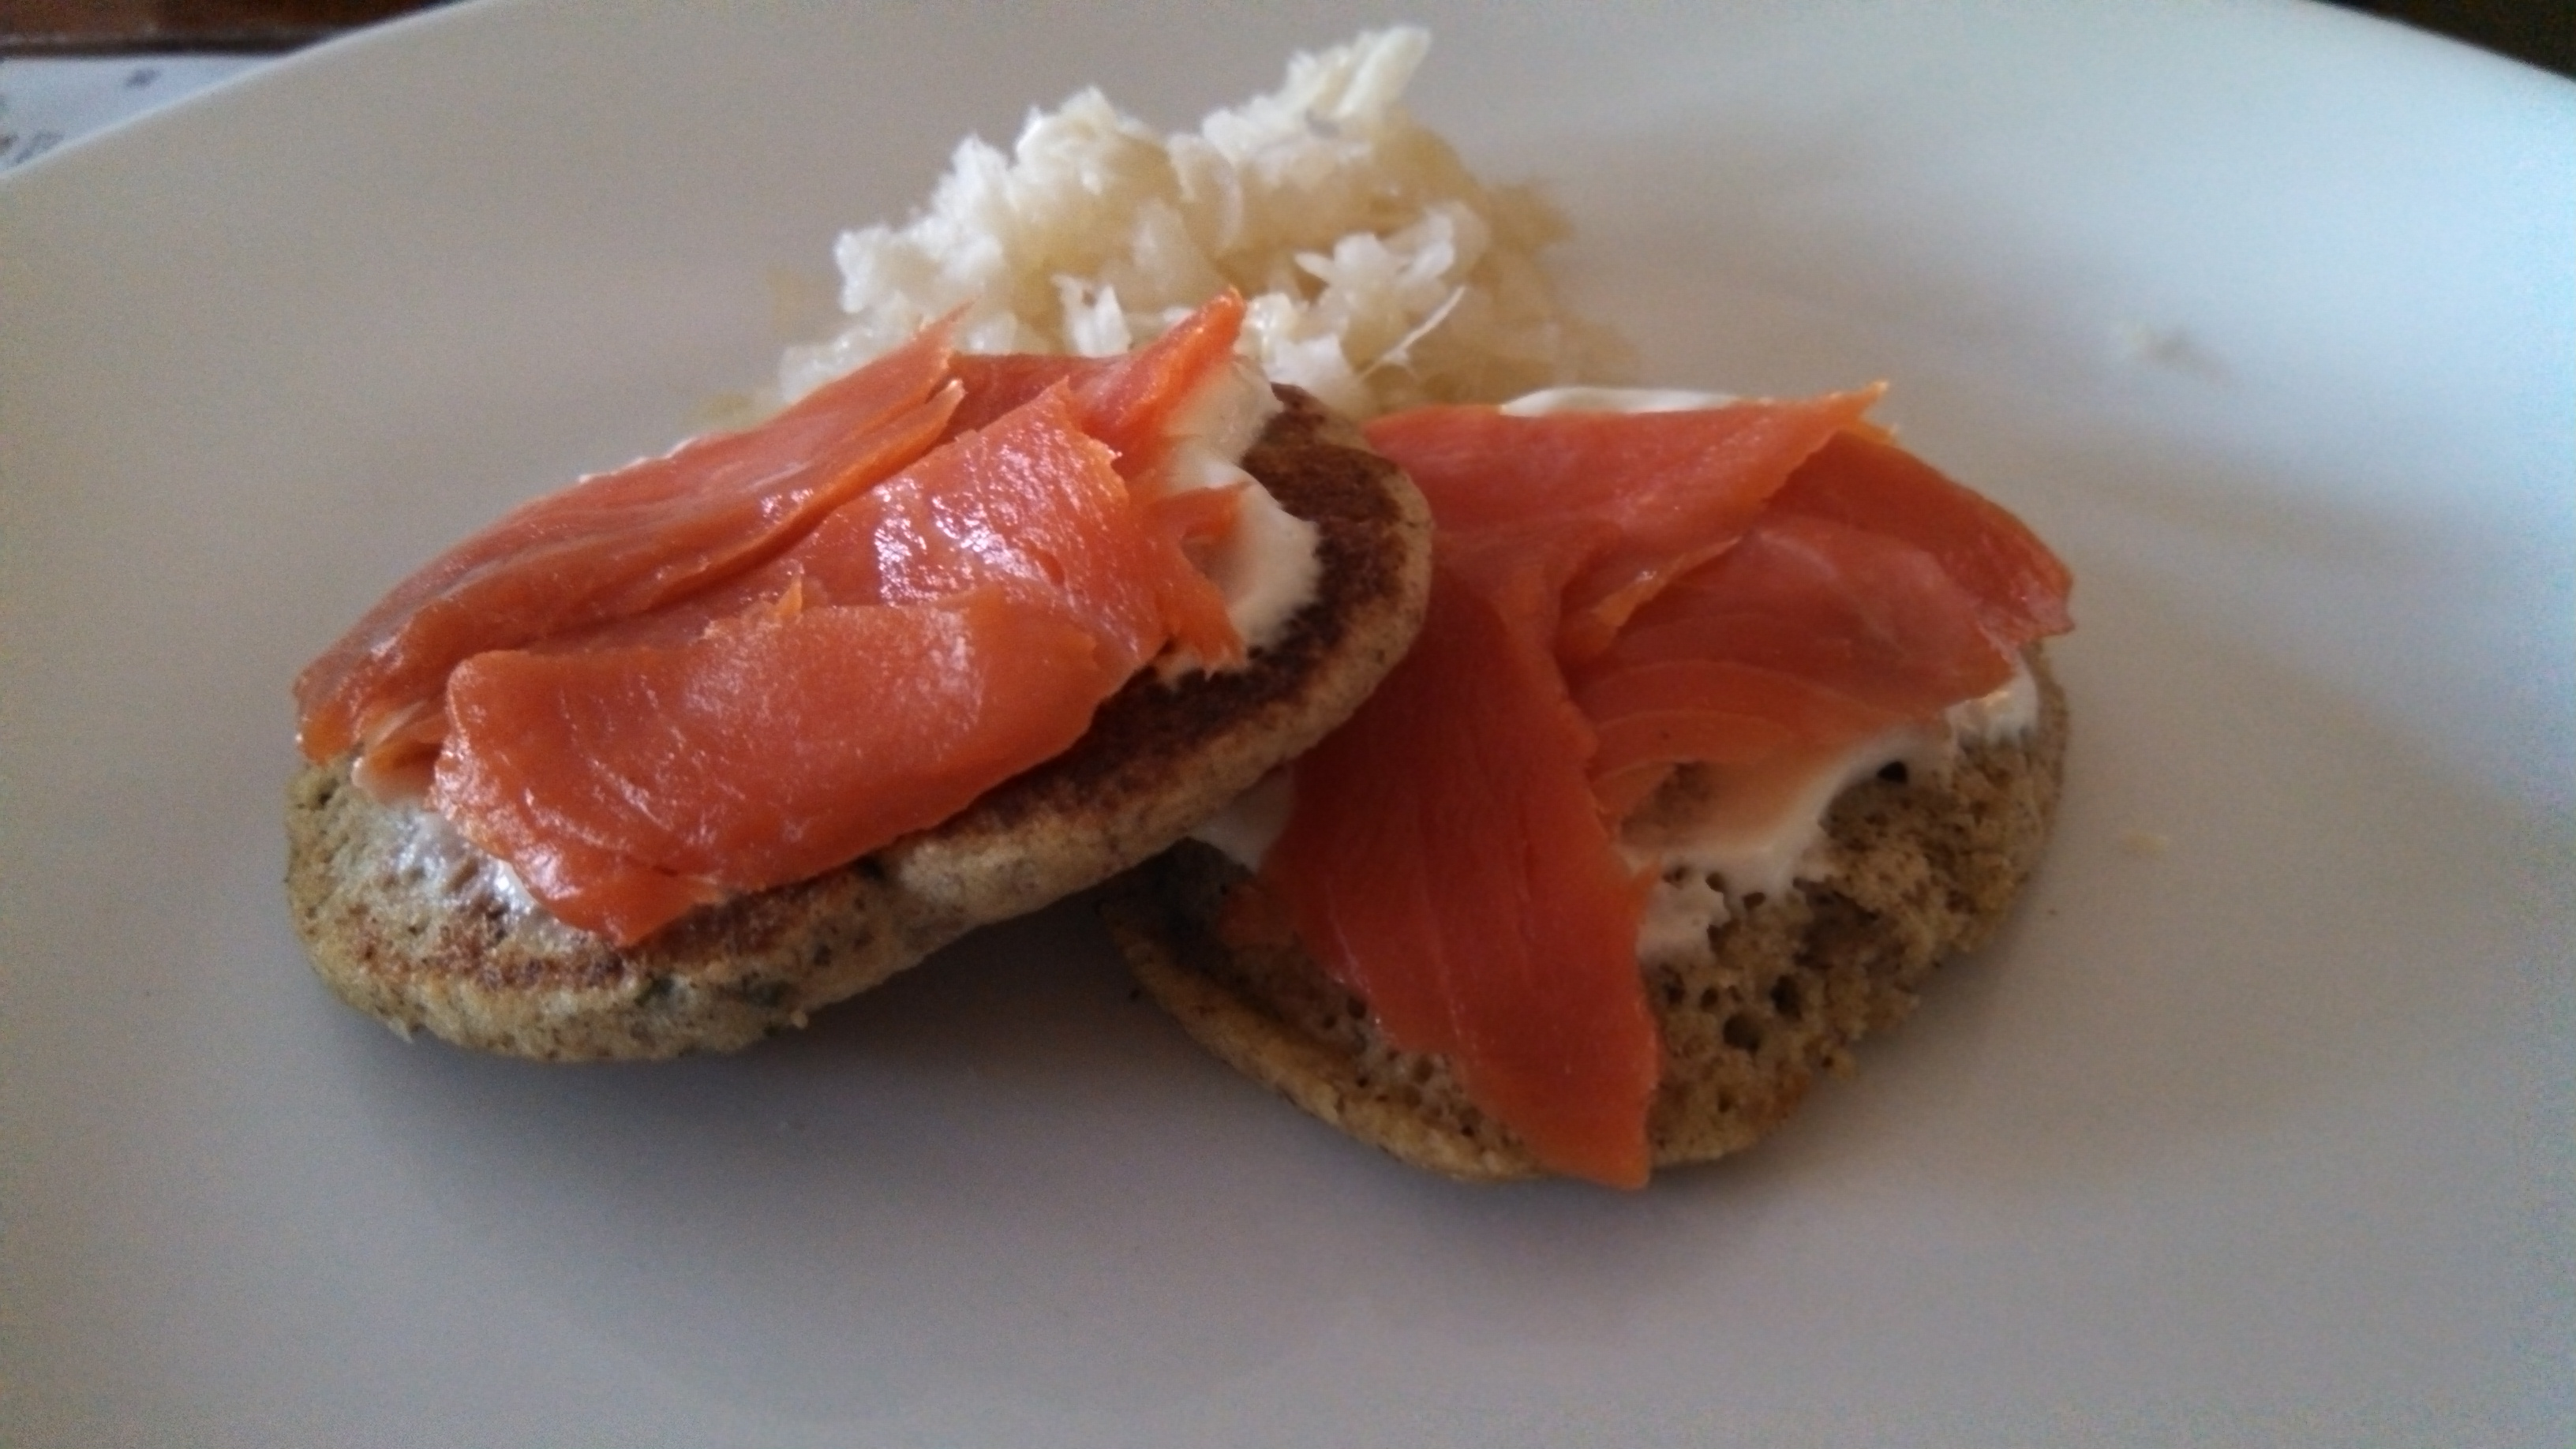 Buckwheat Blinis with Smoked Salmon, Lemon Sour Cream and Sauerkraut